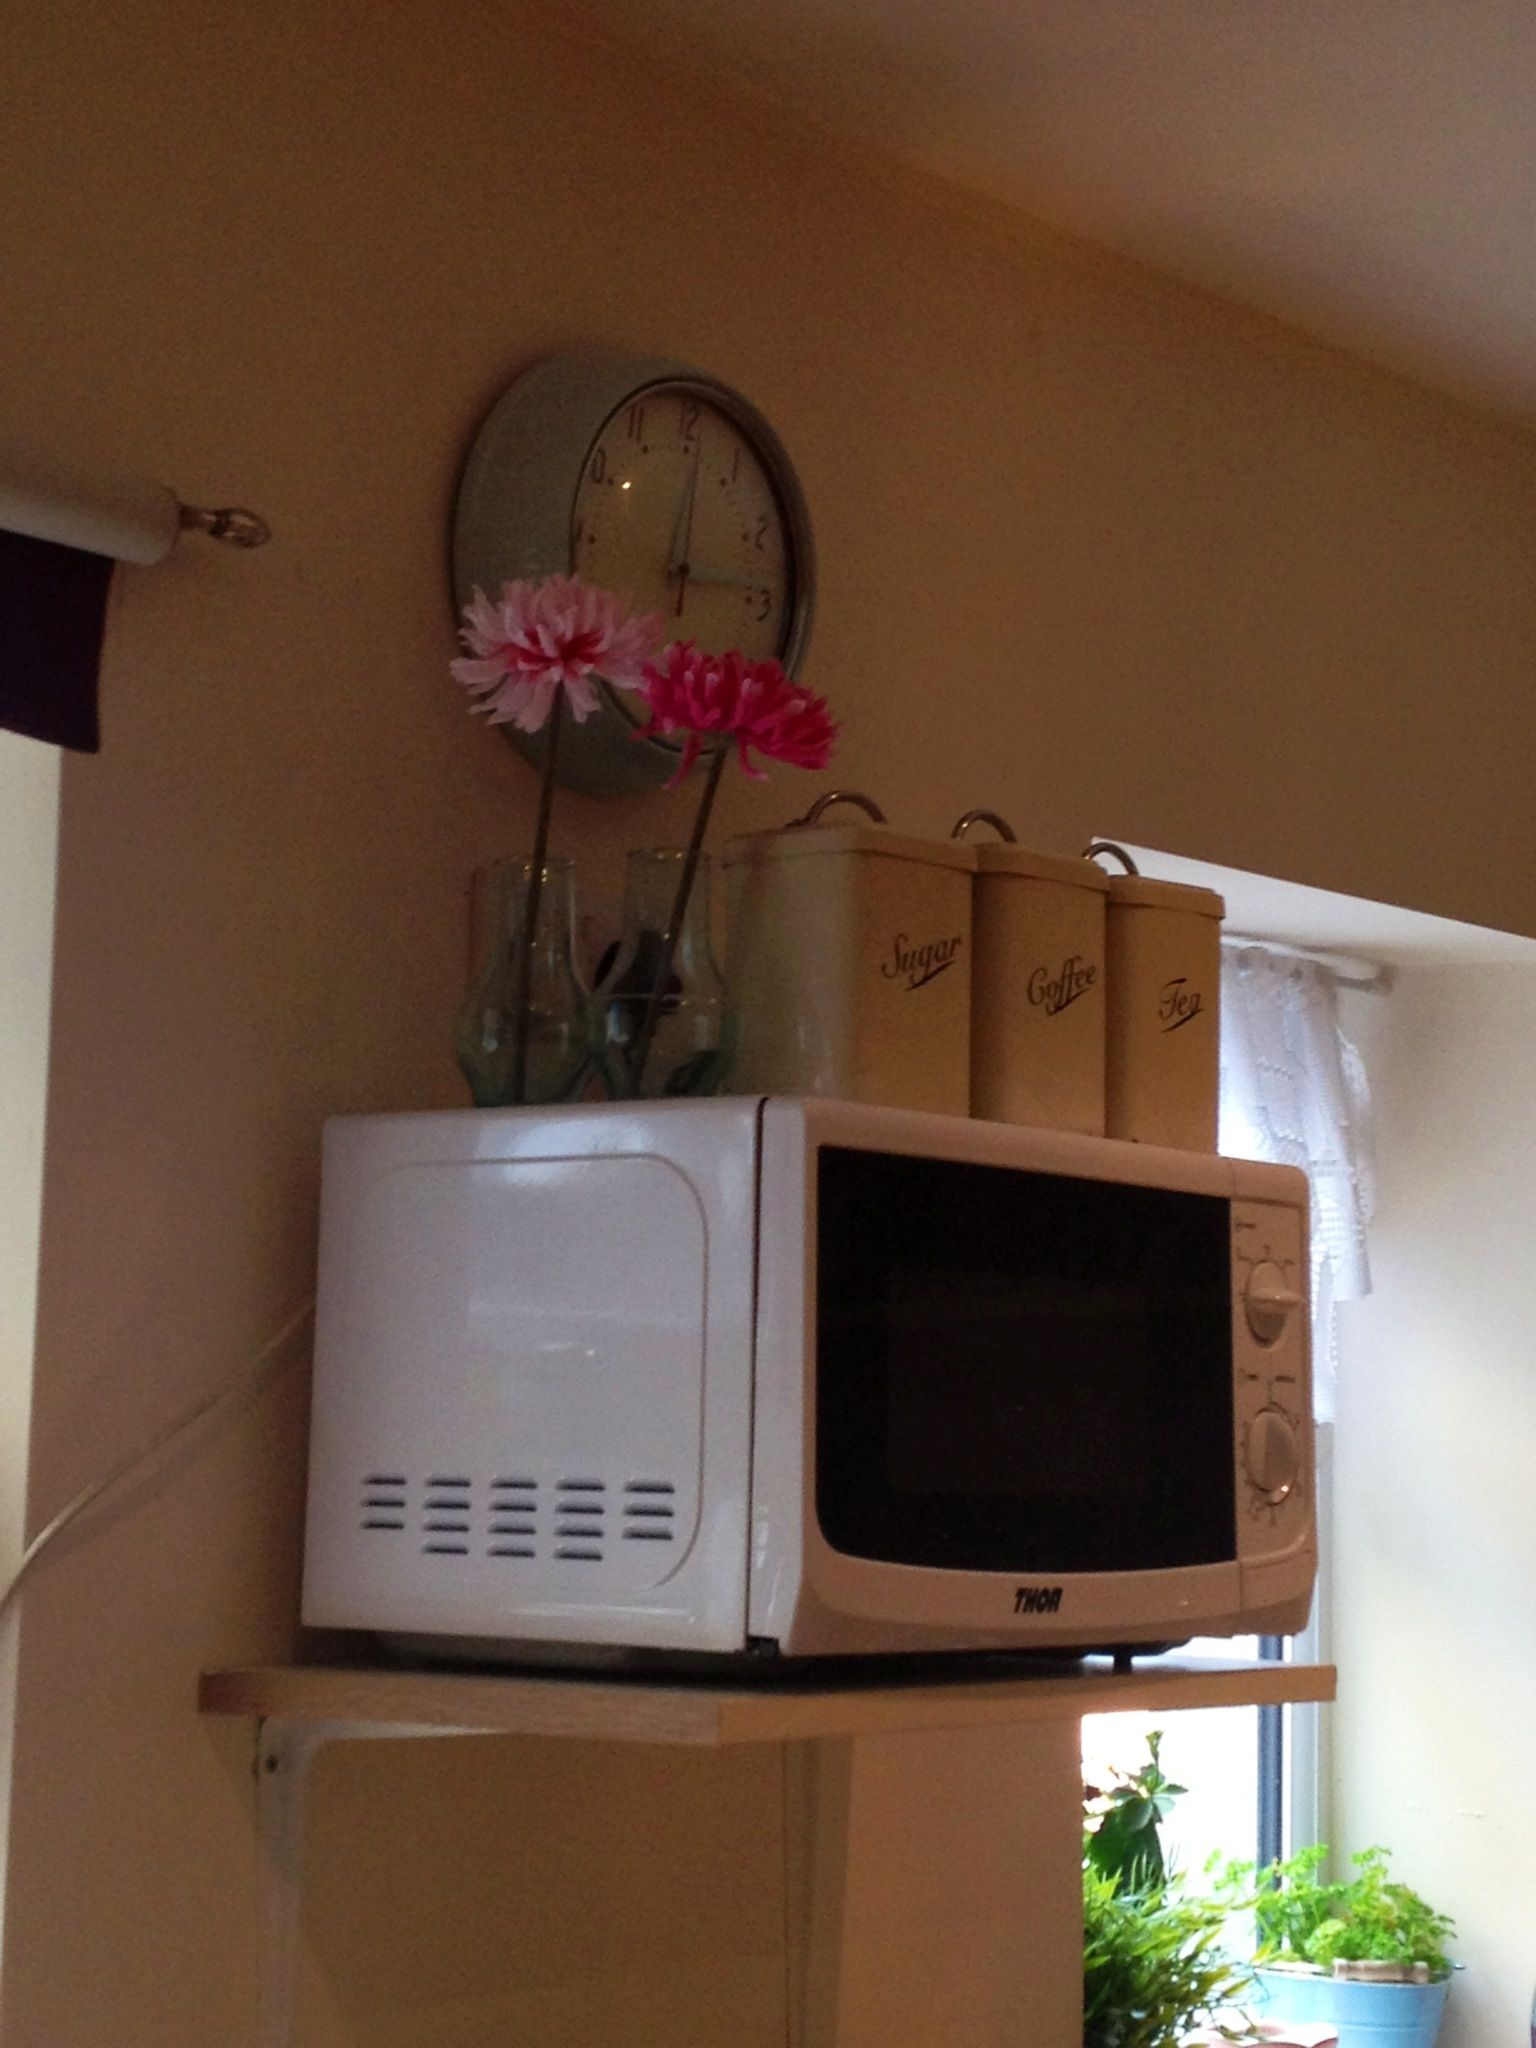 Use Your Walls Put Your Microwave Up On A Shelf Though Not Too High So You Can Still Use